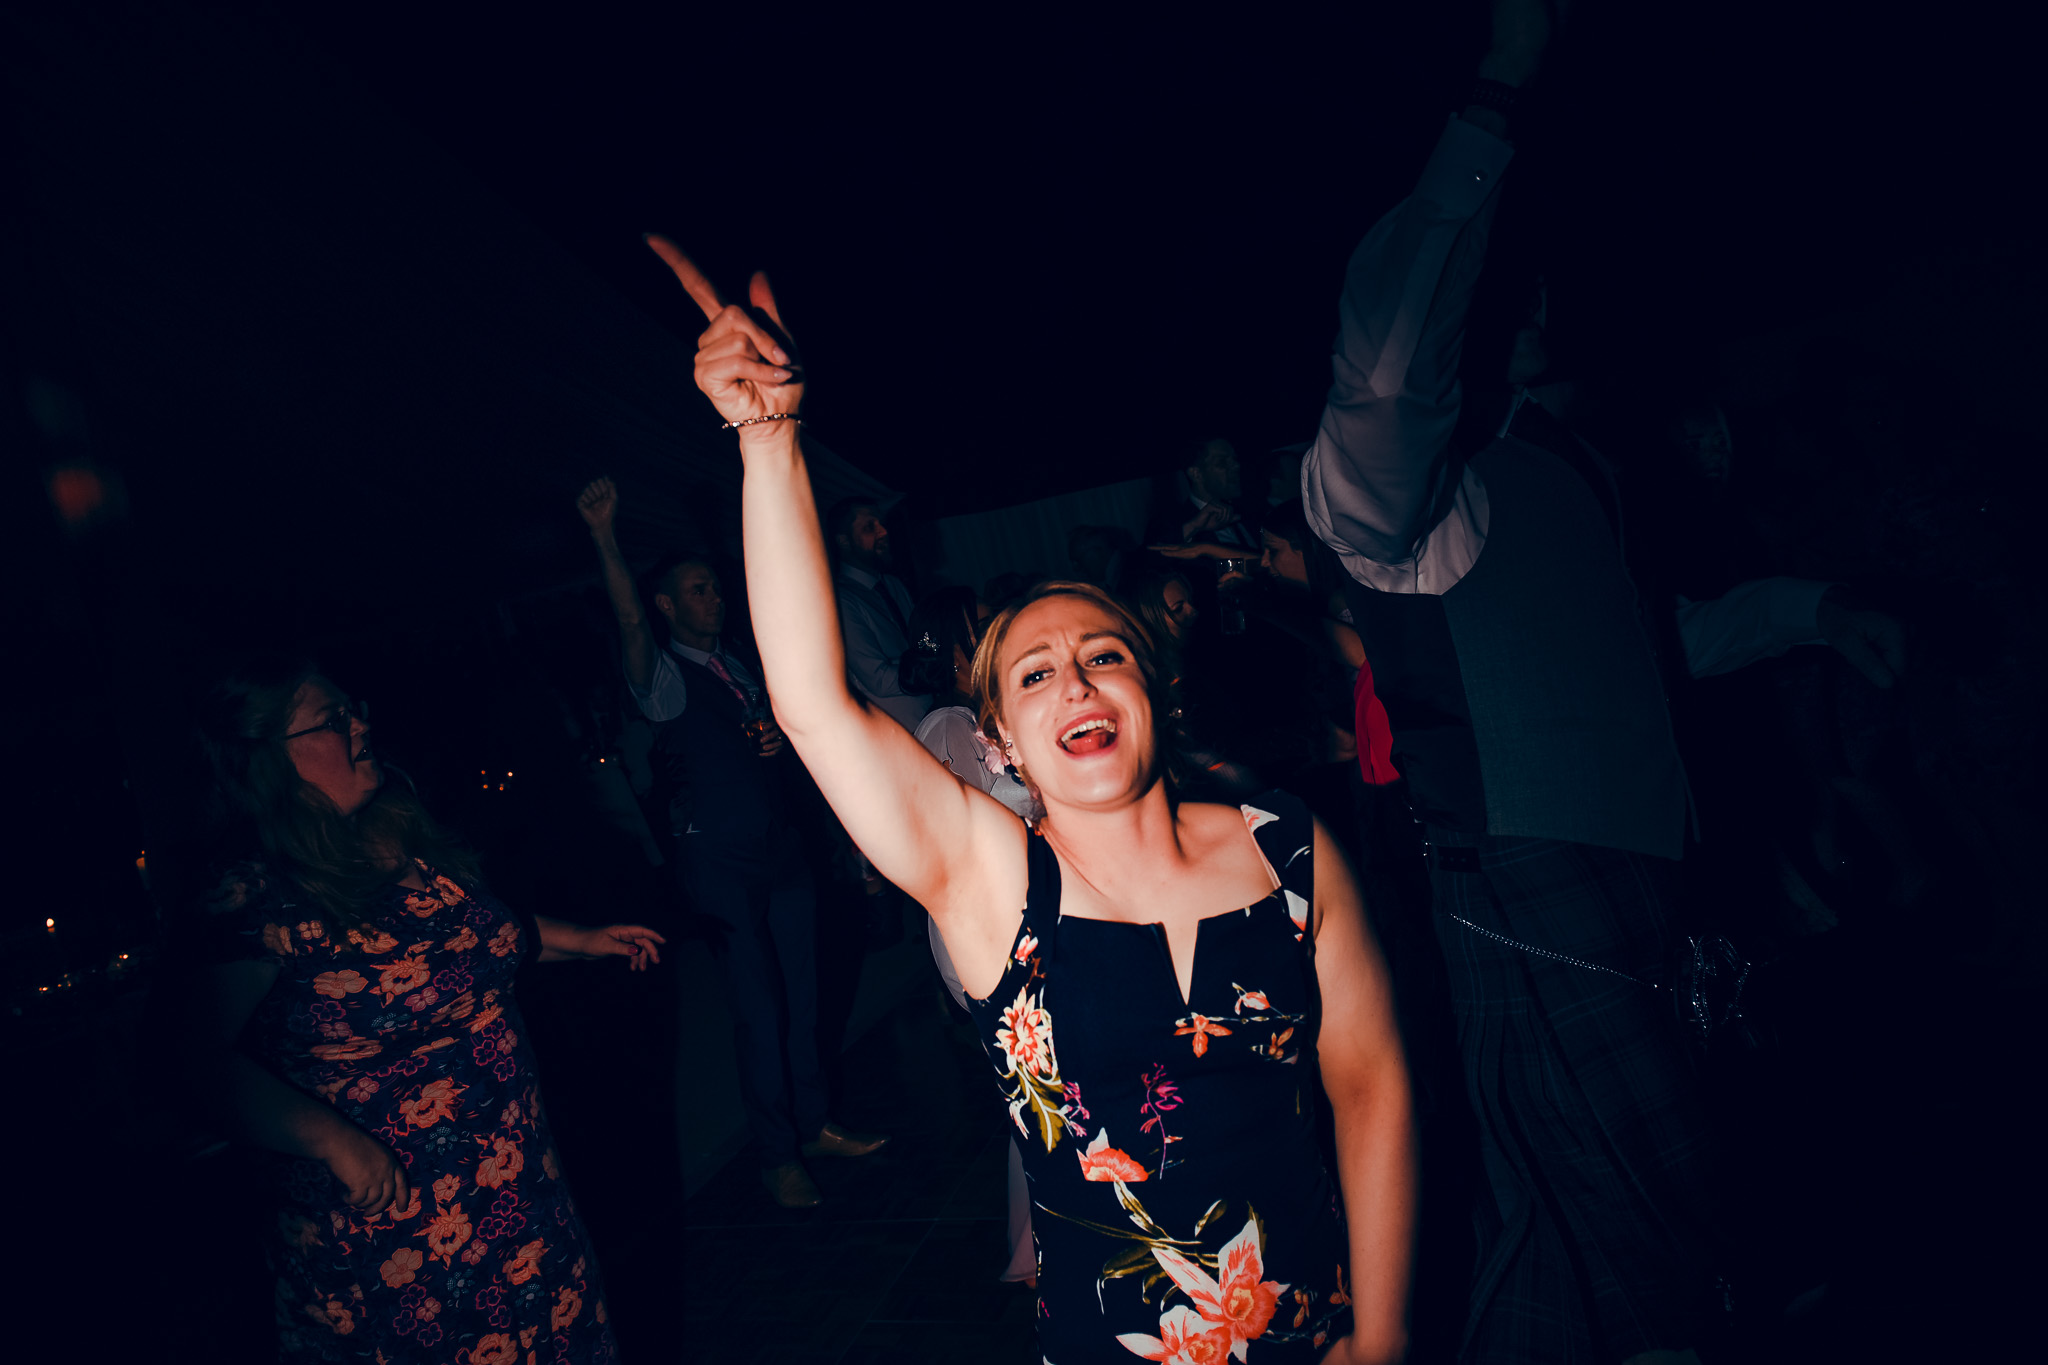 Wedding guest partying